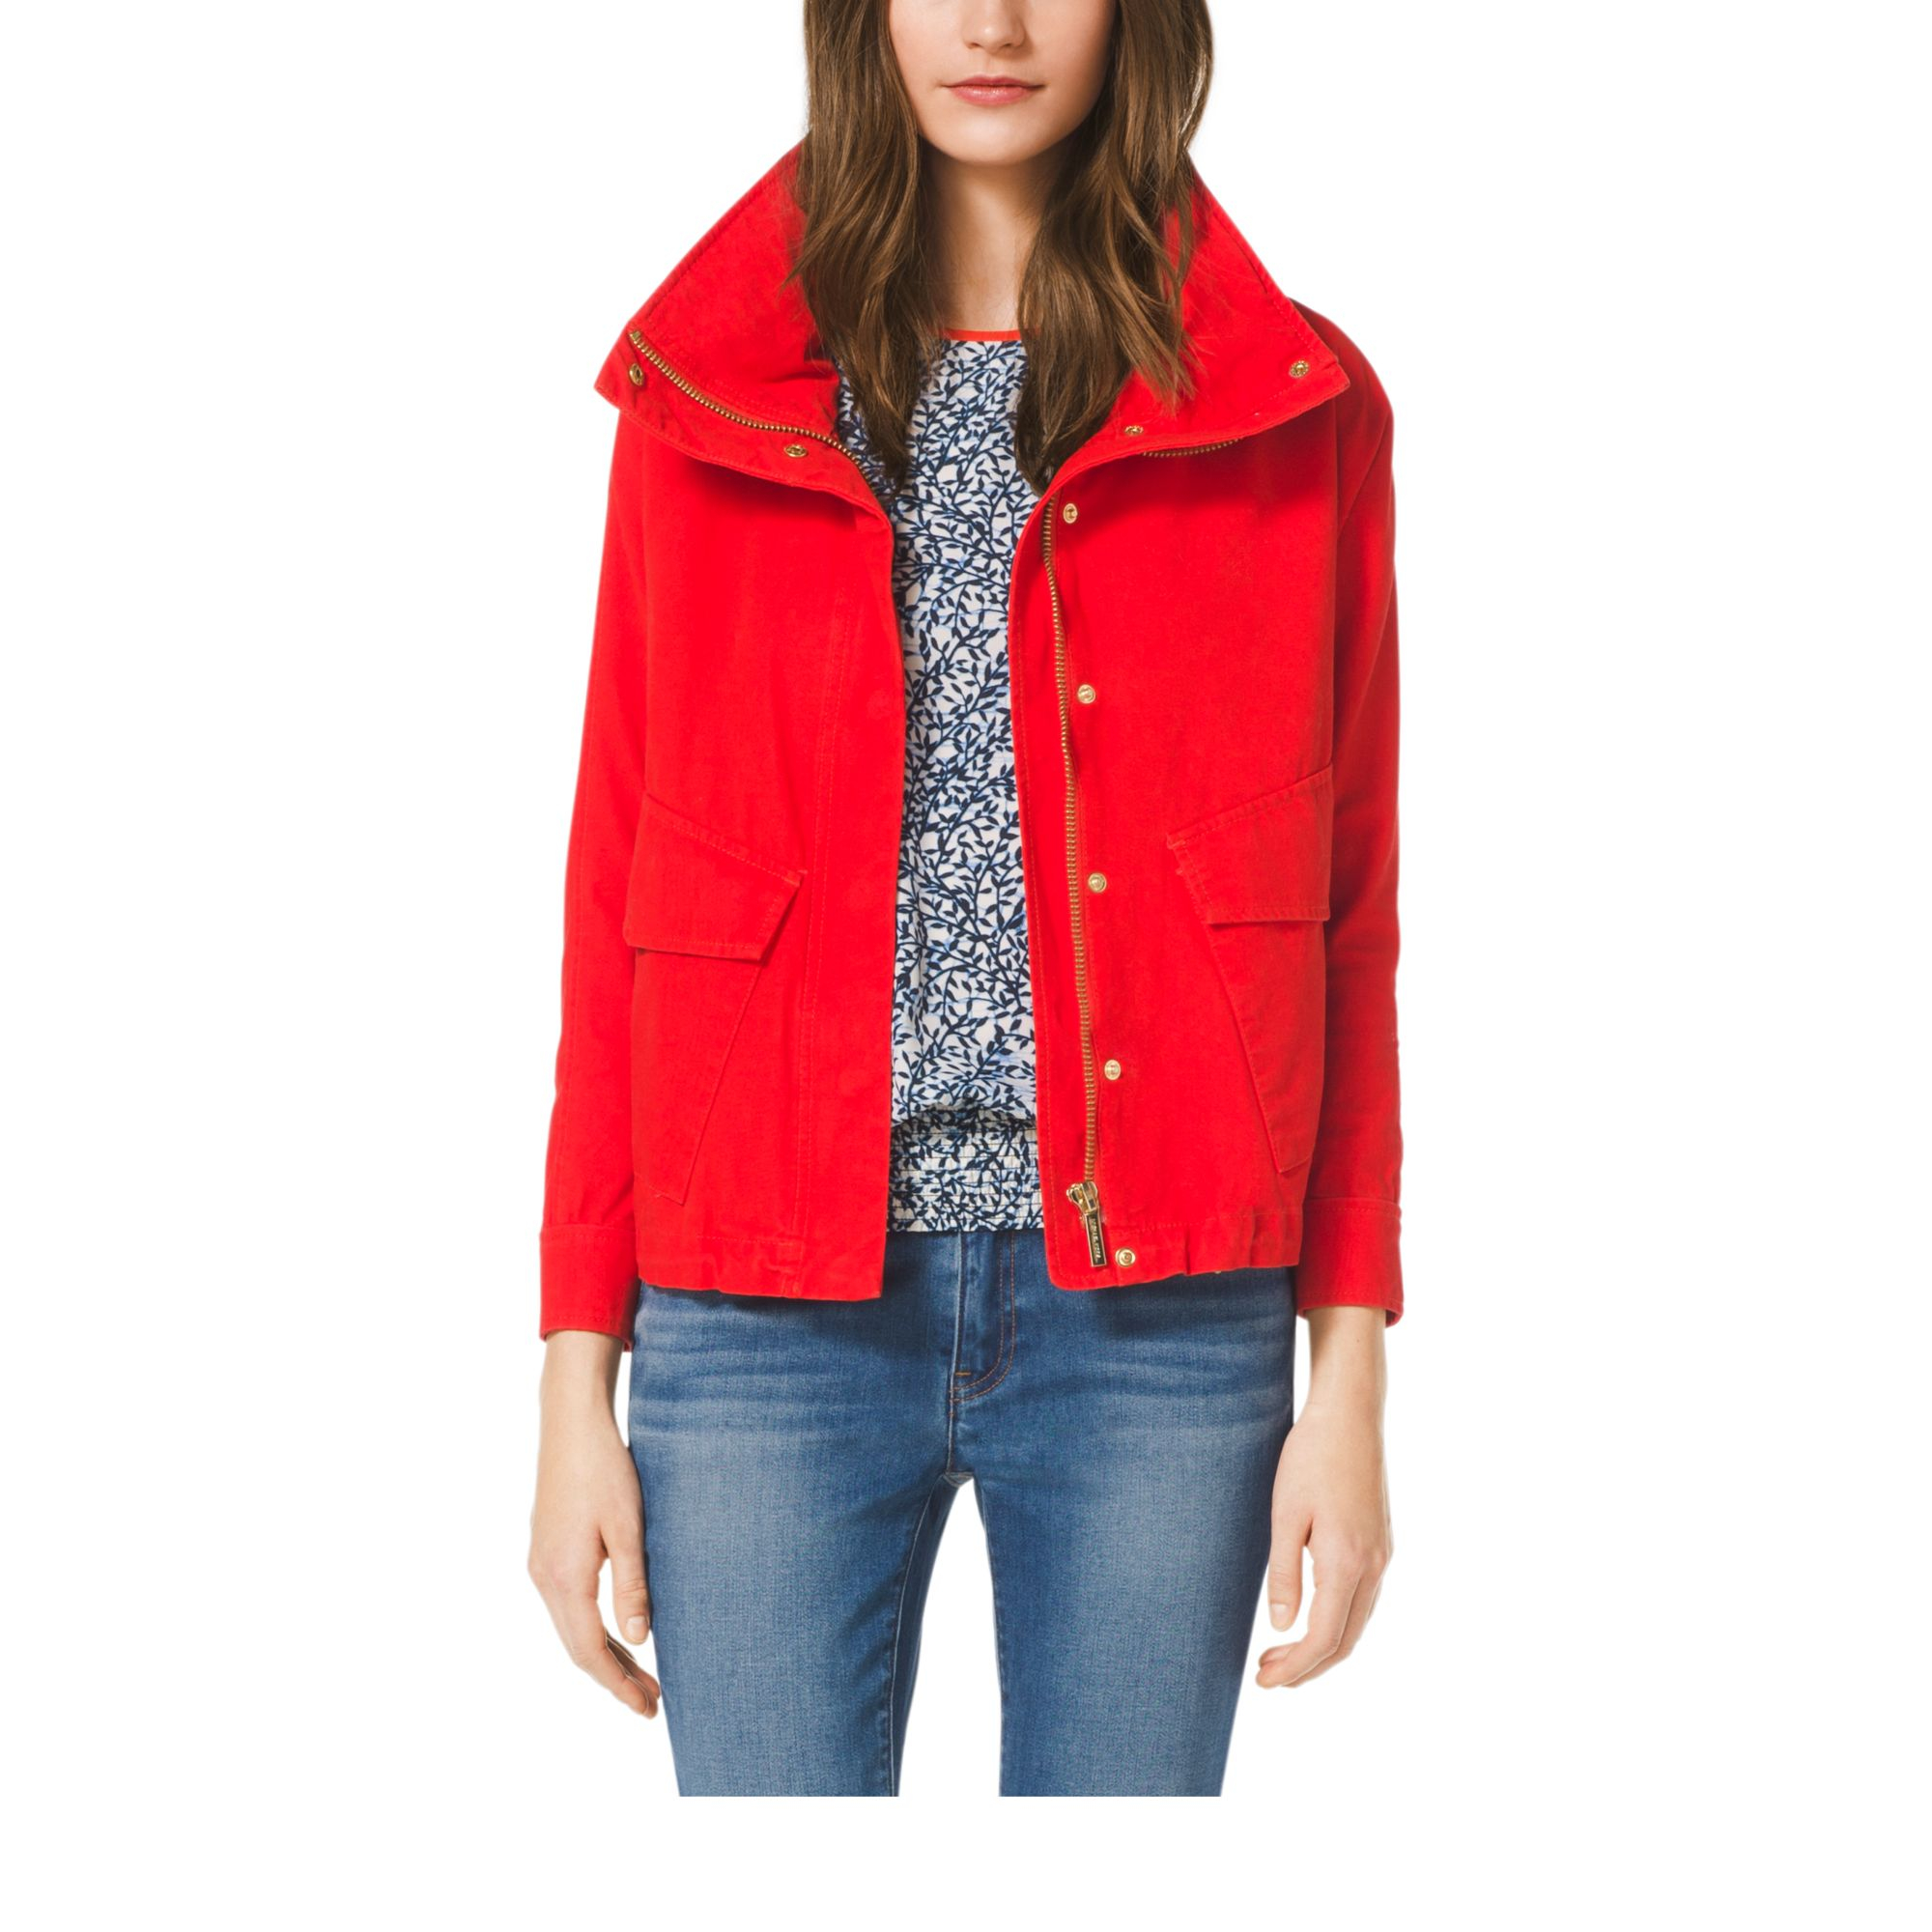 Michael kors Cropped Canvas Jacket, Petite in Red   Lyst